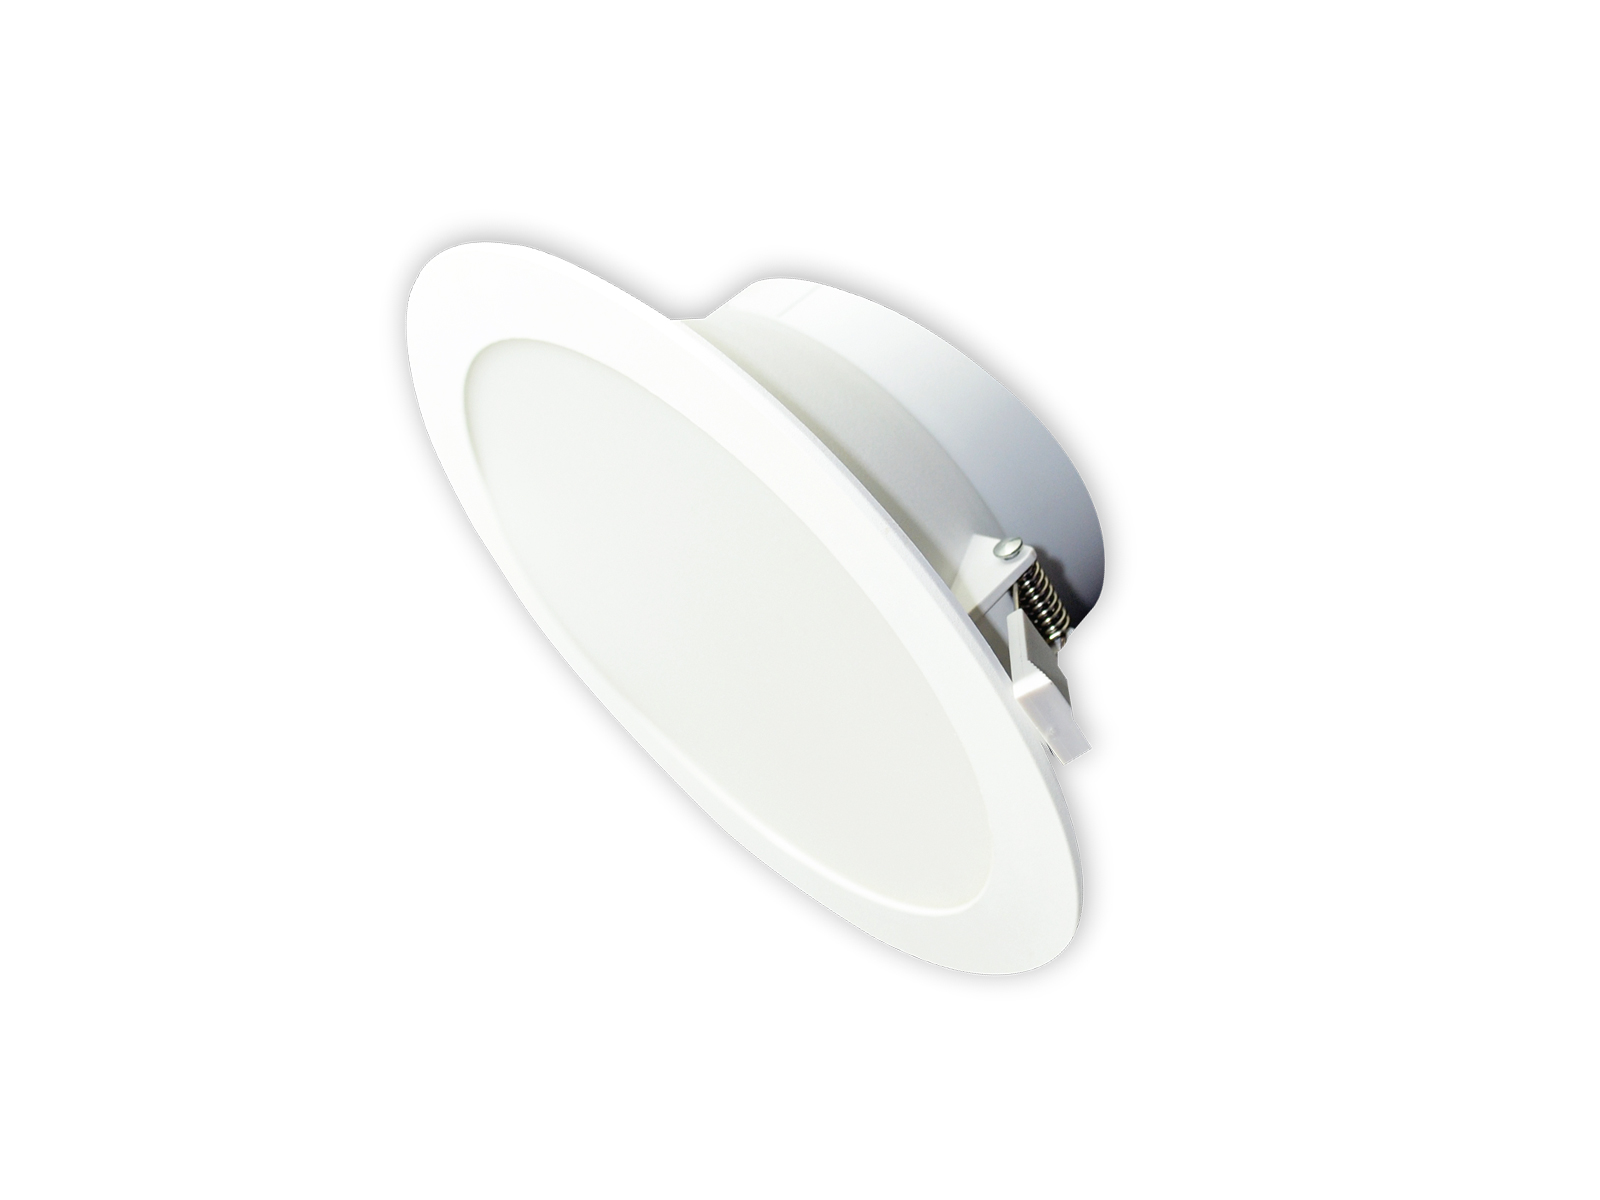 sunshine-15w-led-downlight-sembawang-lighting-house.jpg